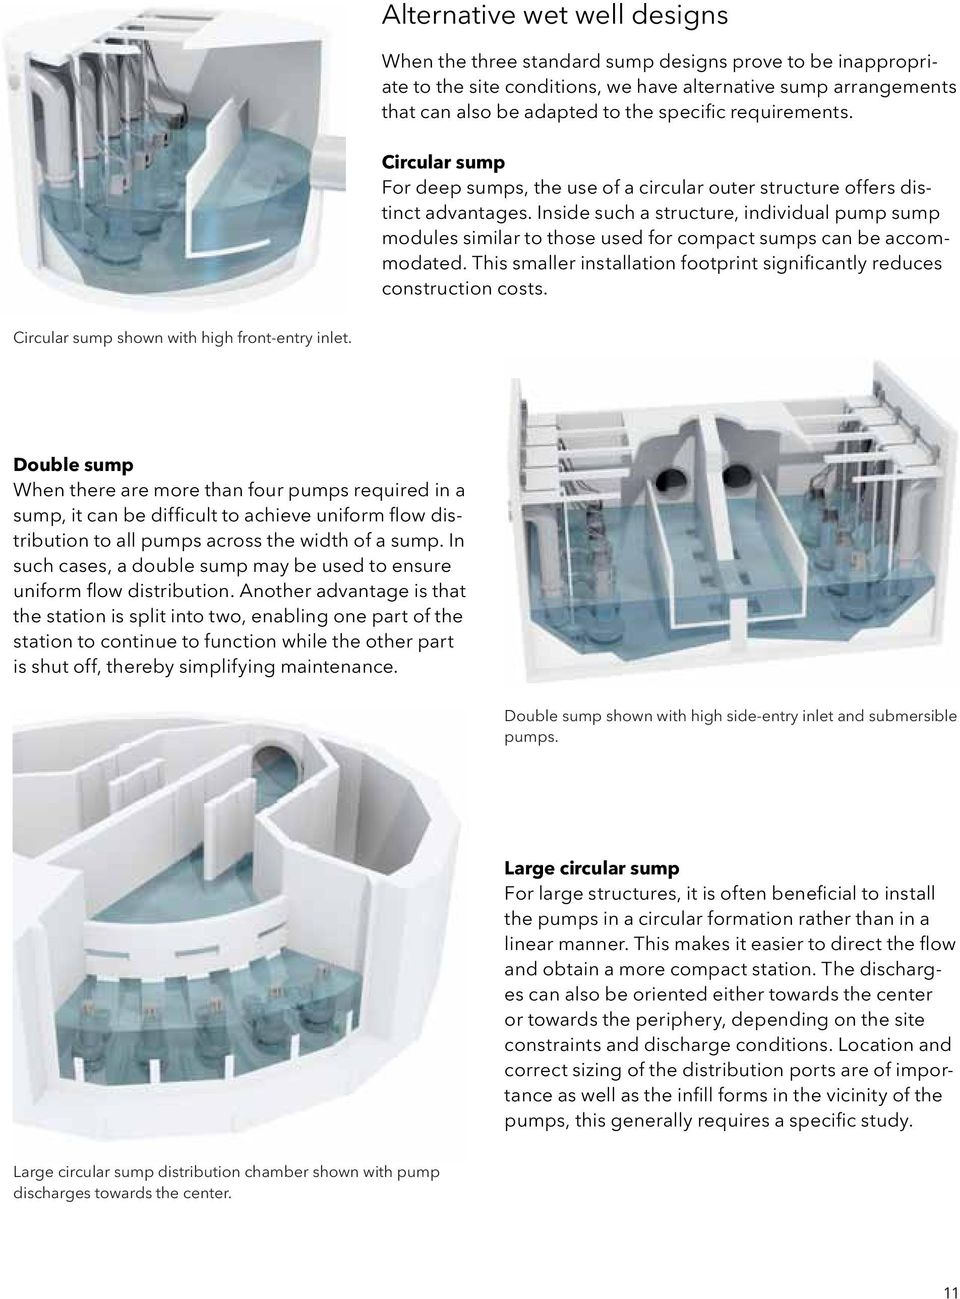 Inside such a structure, individual pump sump modules similar to those used for compact sumps can be accommodated. This smaller installation footprint significantly reduces construction costs.